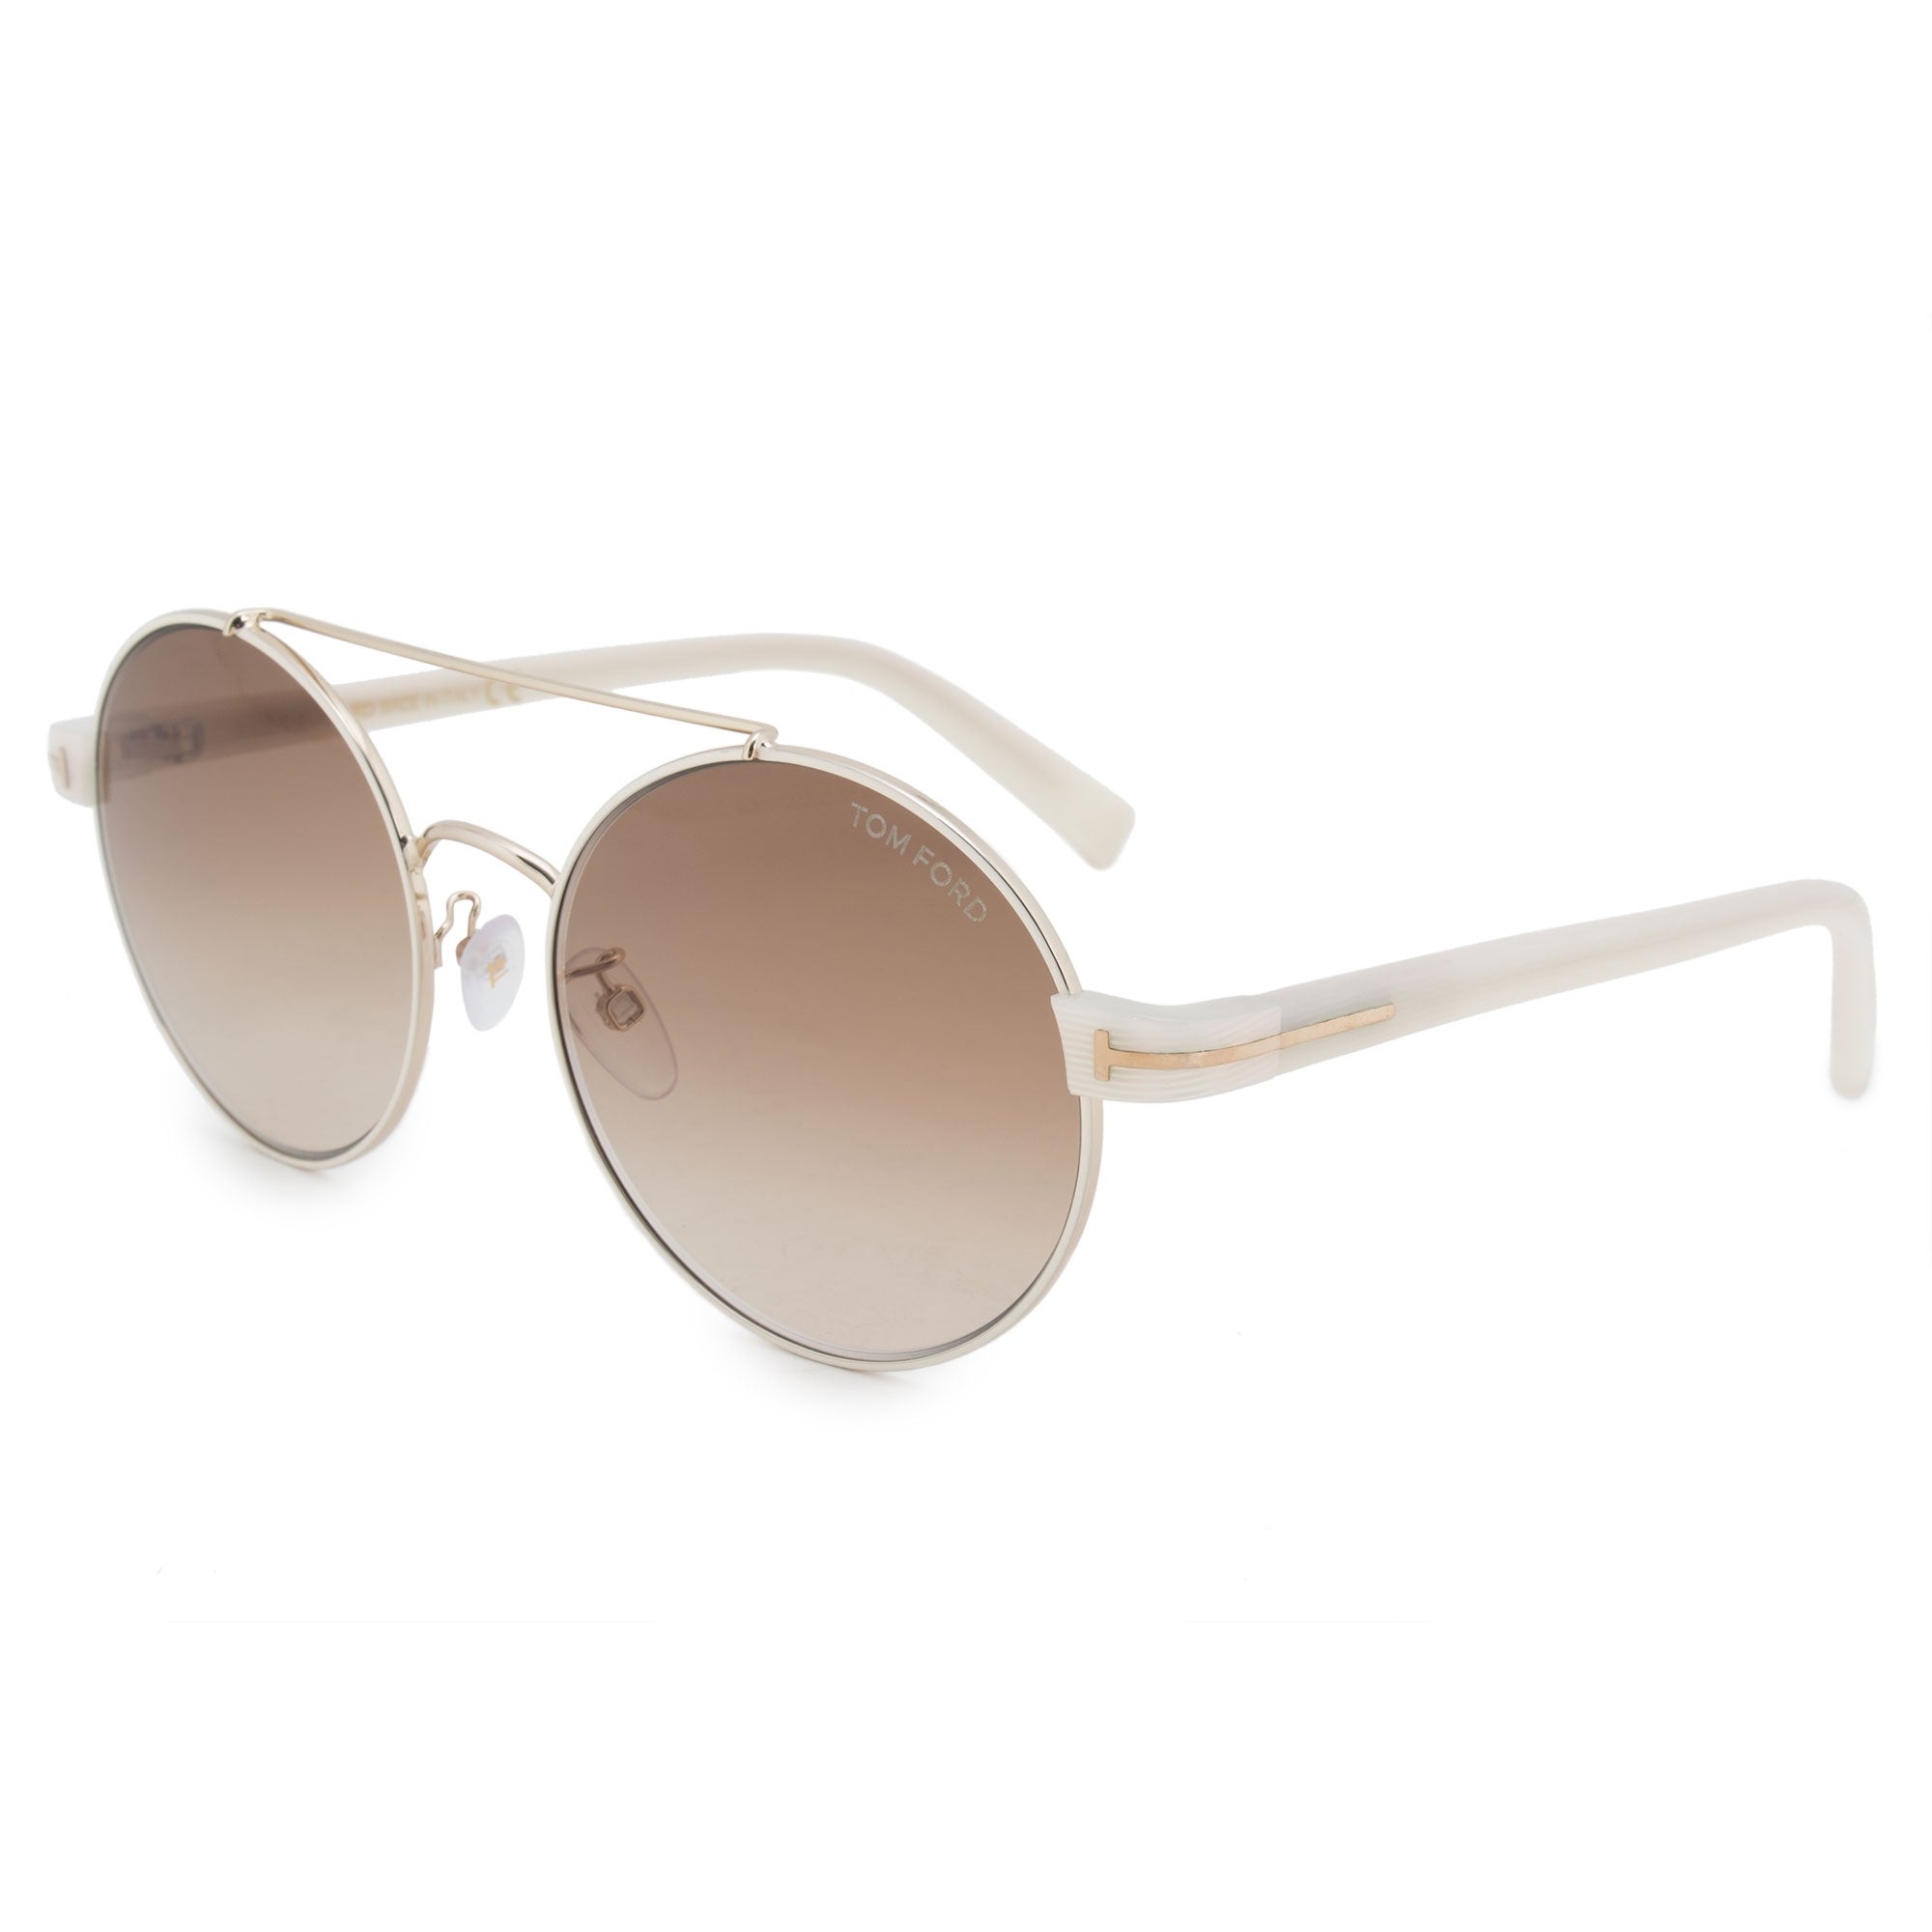 1f298a8295 Shop Tom Ford Round Sunglasses FT0486-D 33F 55 - Free Shipping Today -  Overstock - 24240740